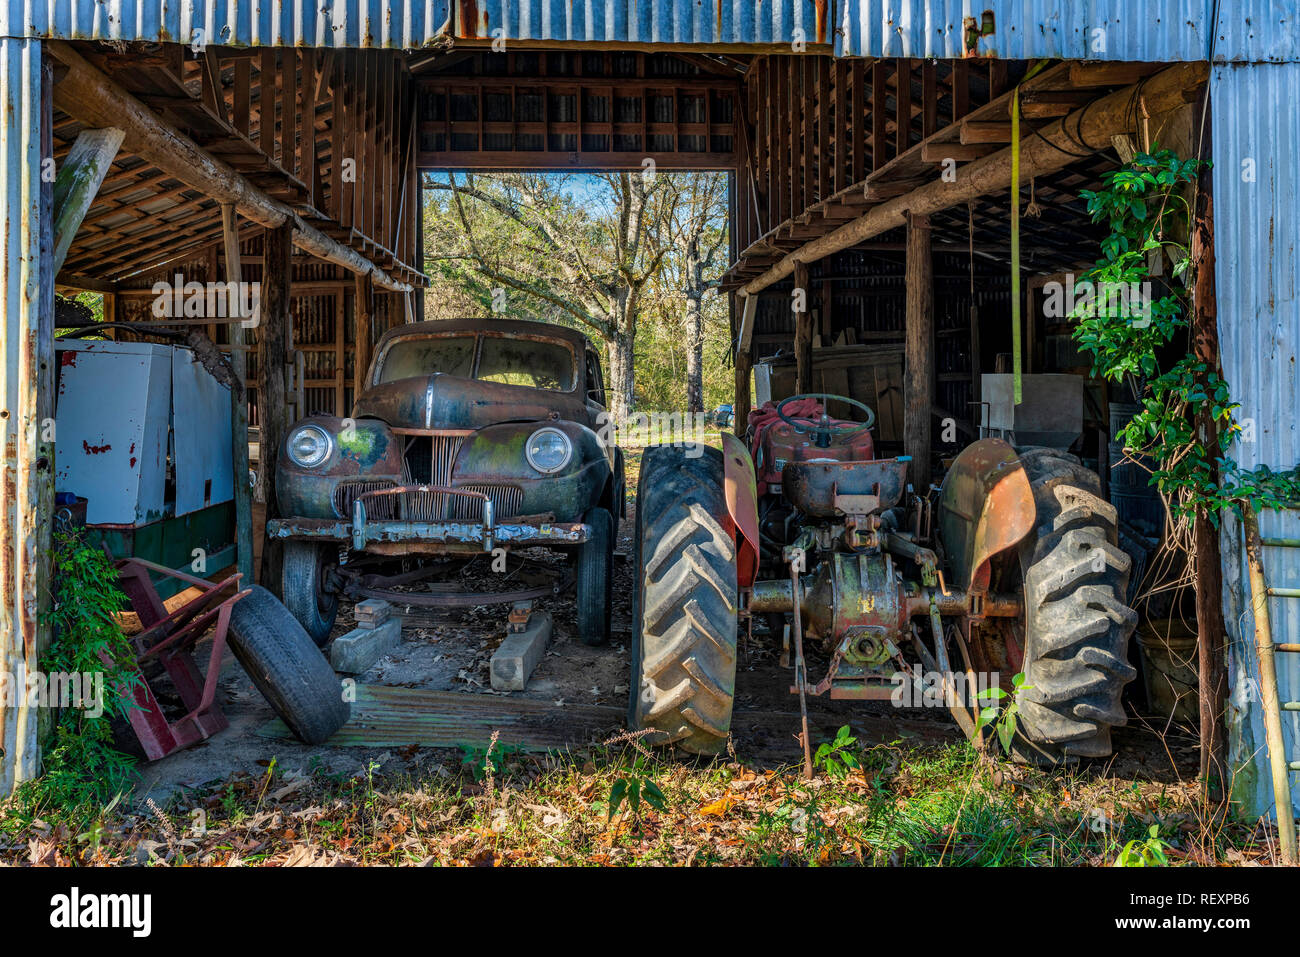 Old Farm Tractor in Old barn - Stock Image